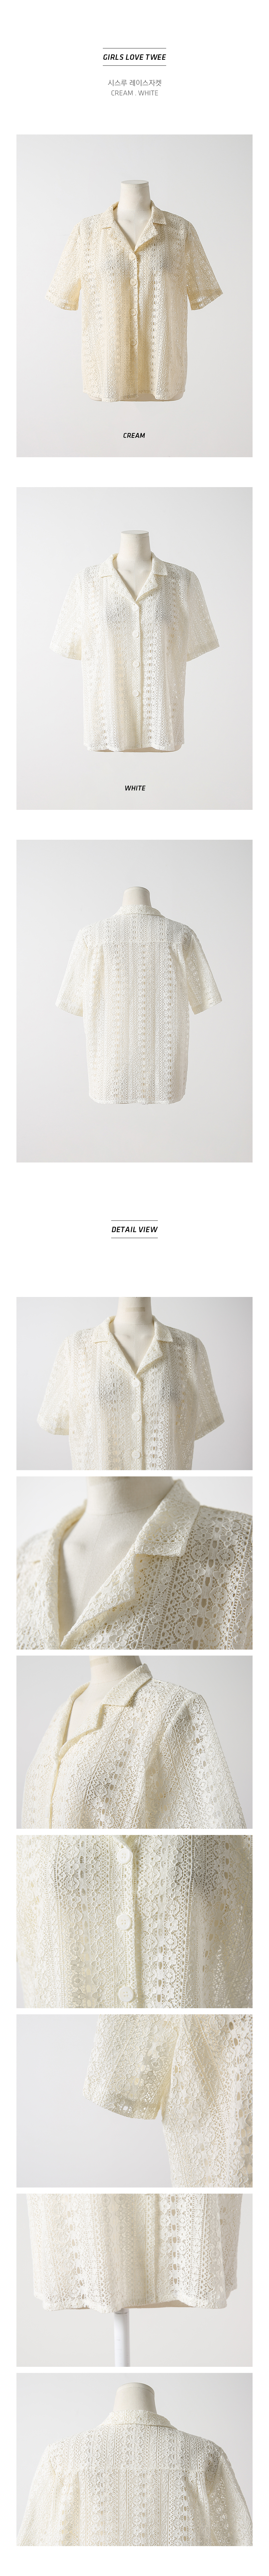 See-through lace jacket